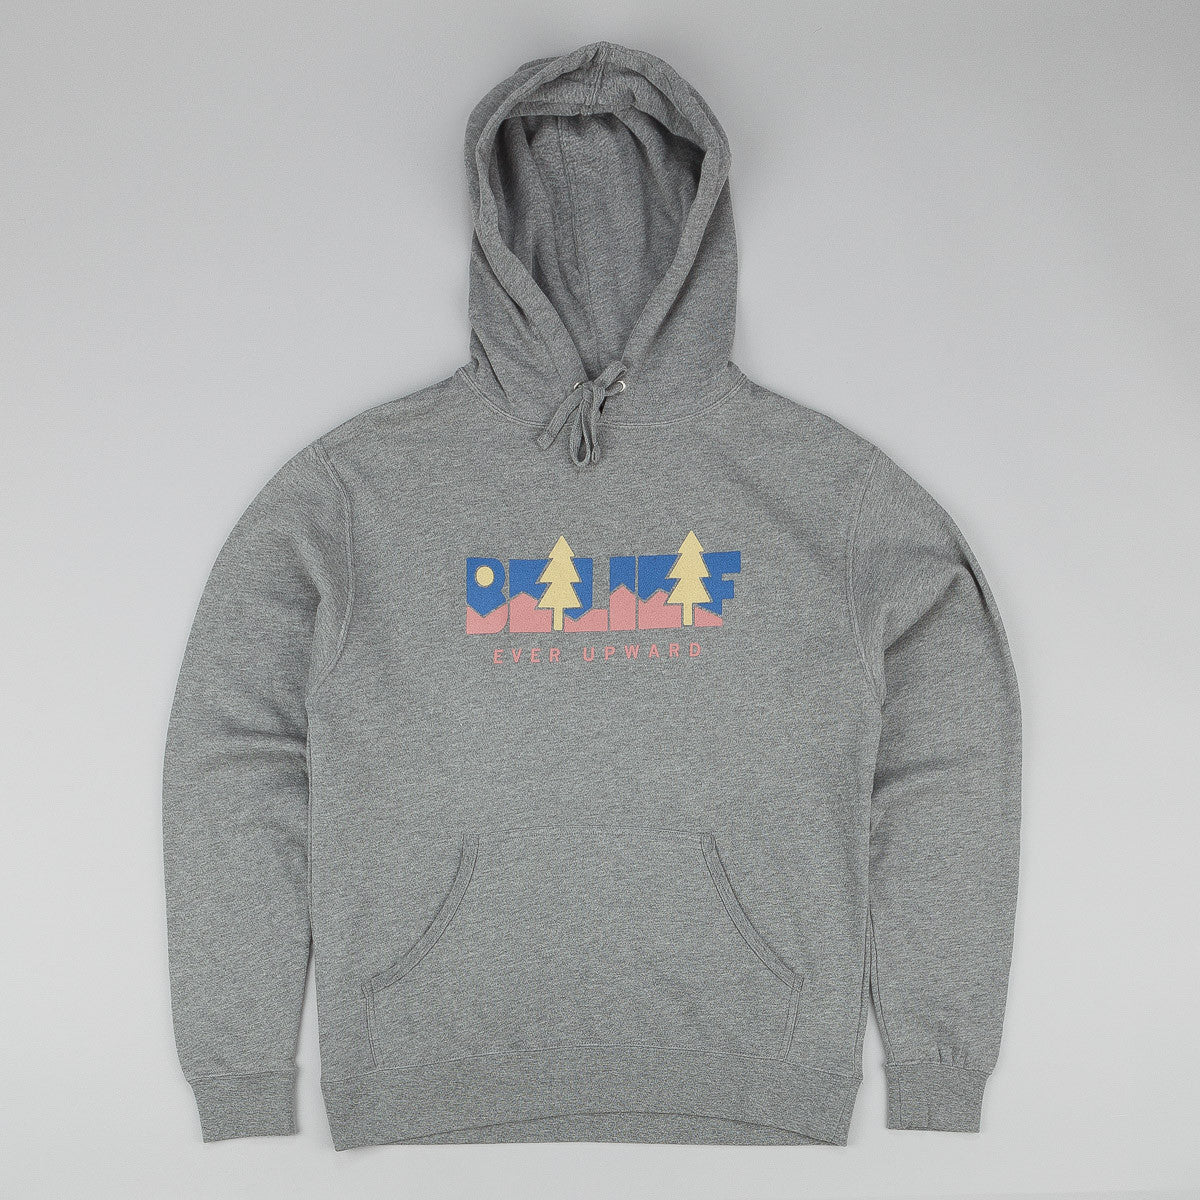 Belief Great Escape Hooded Sweatshirt - Heather Grey